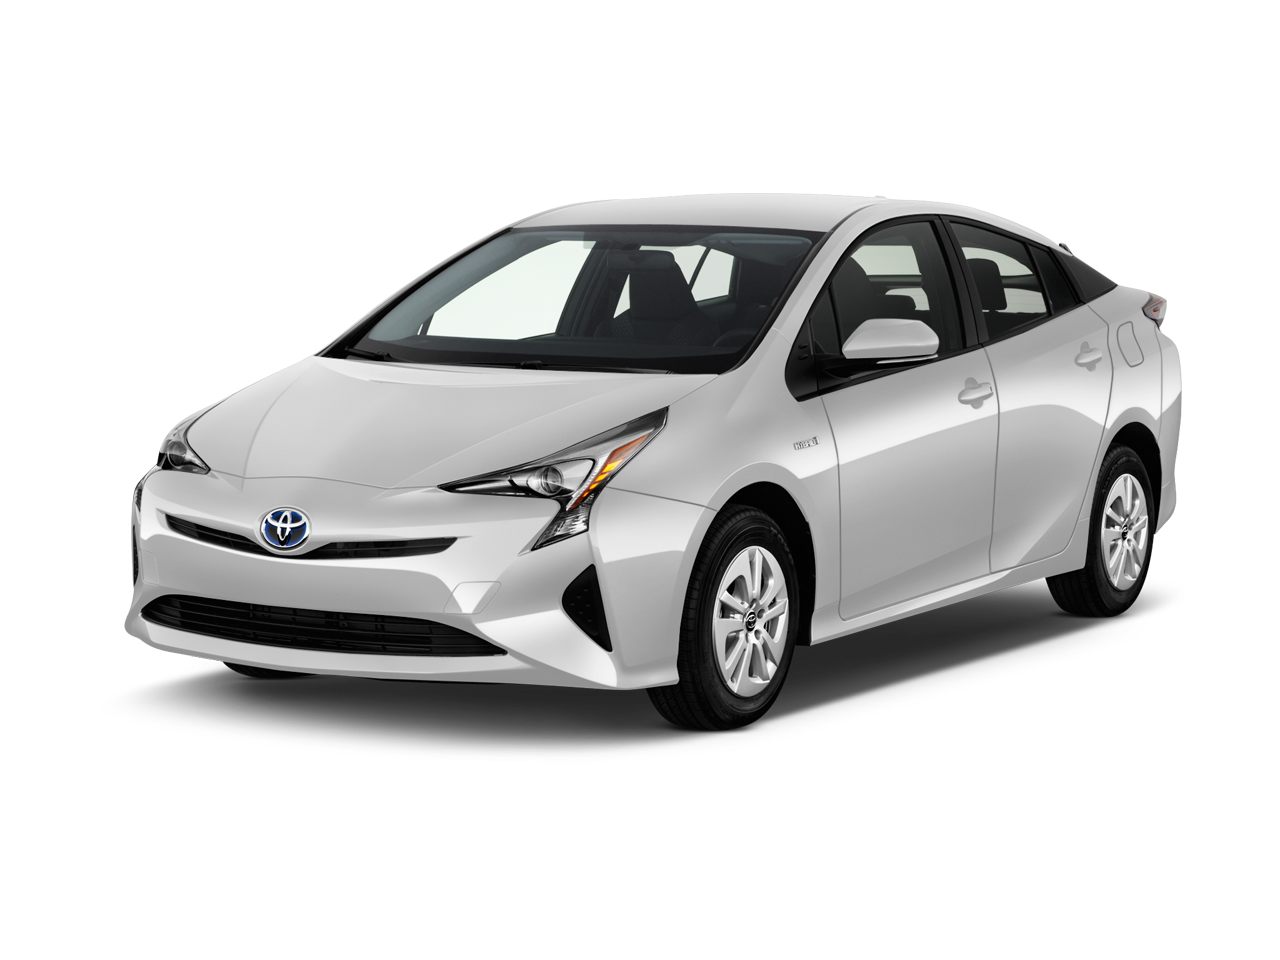 new 2017 toyota prius two hatchback near milpitas ca. Black Bedroom Furniture Sets. Home Design Ideas